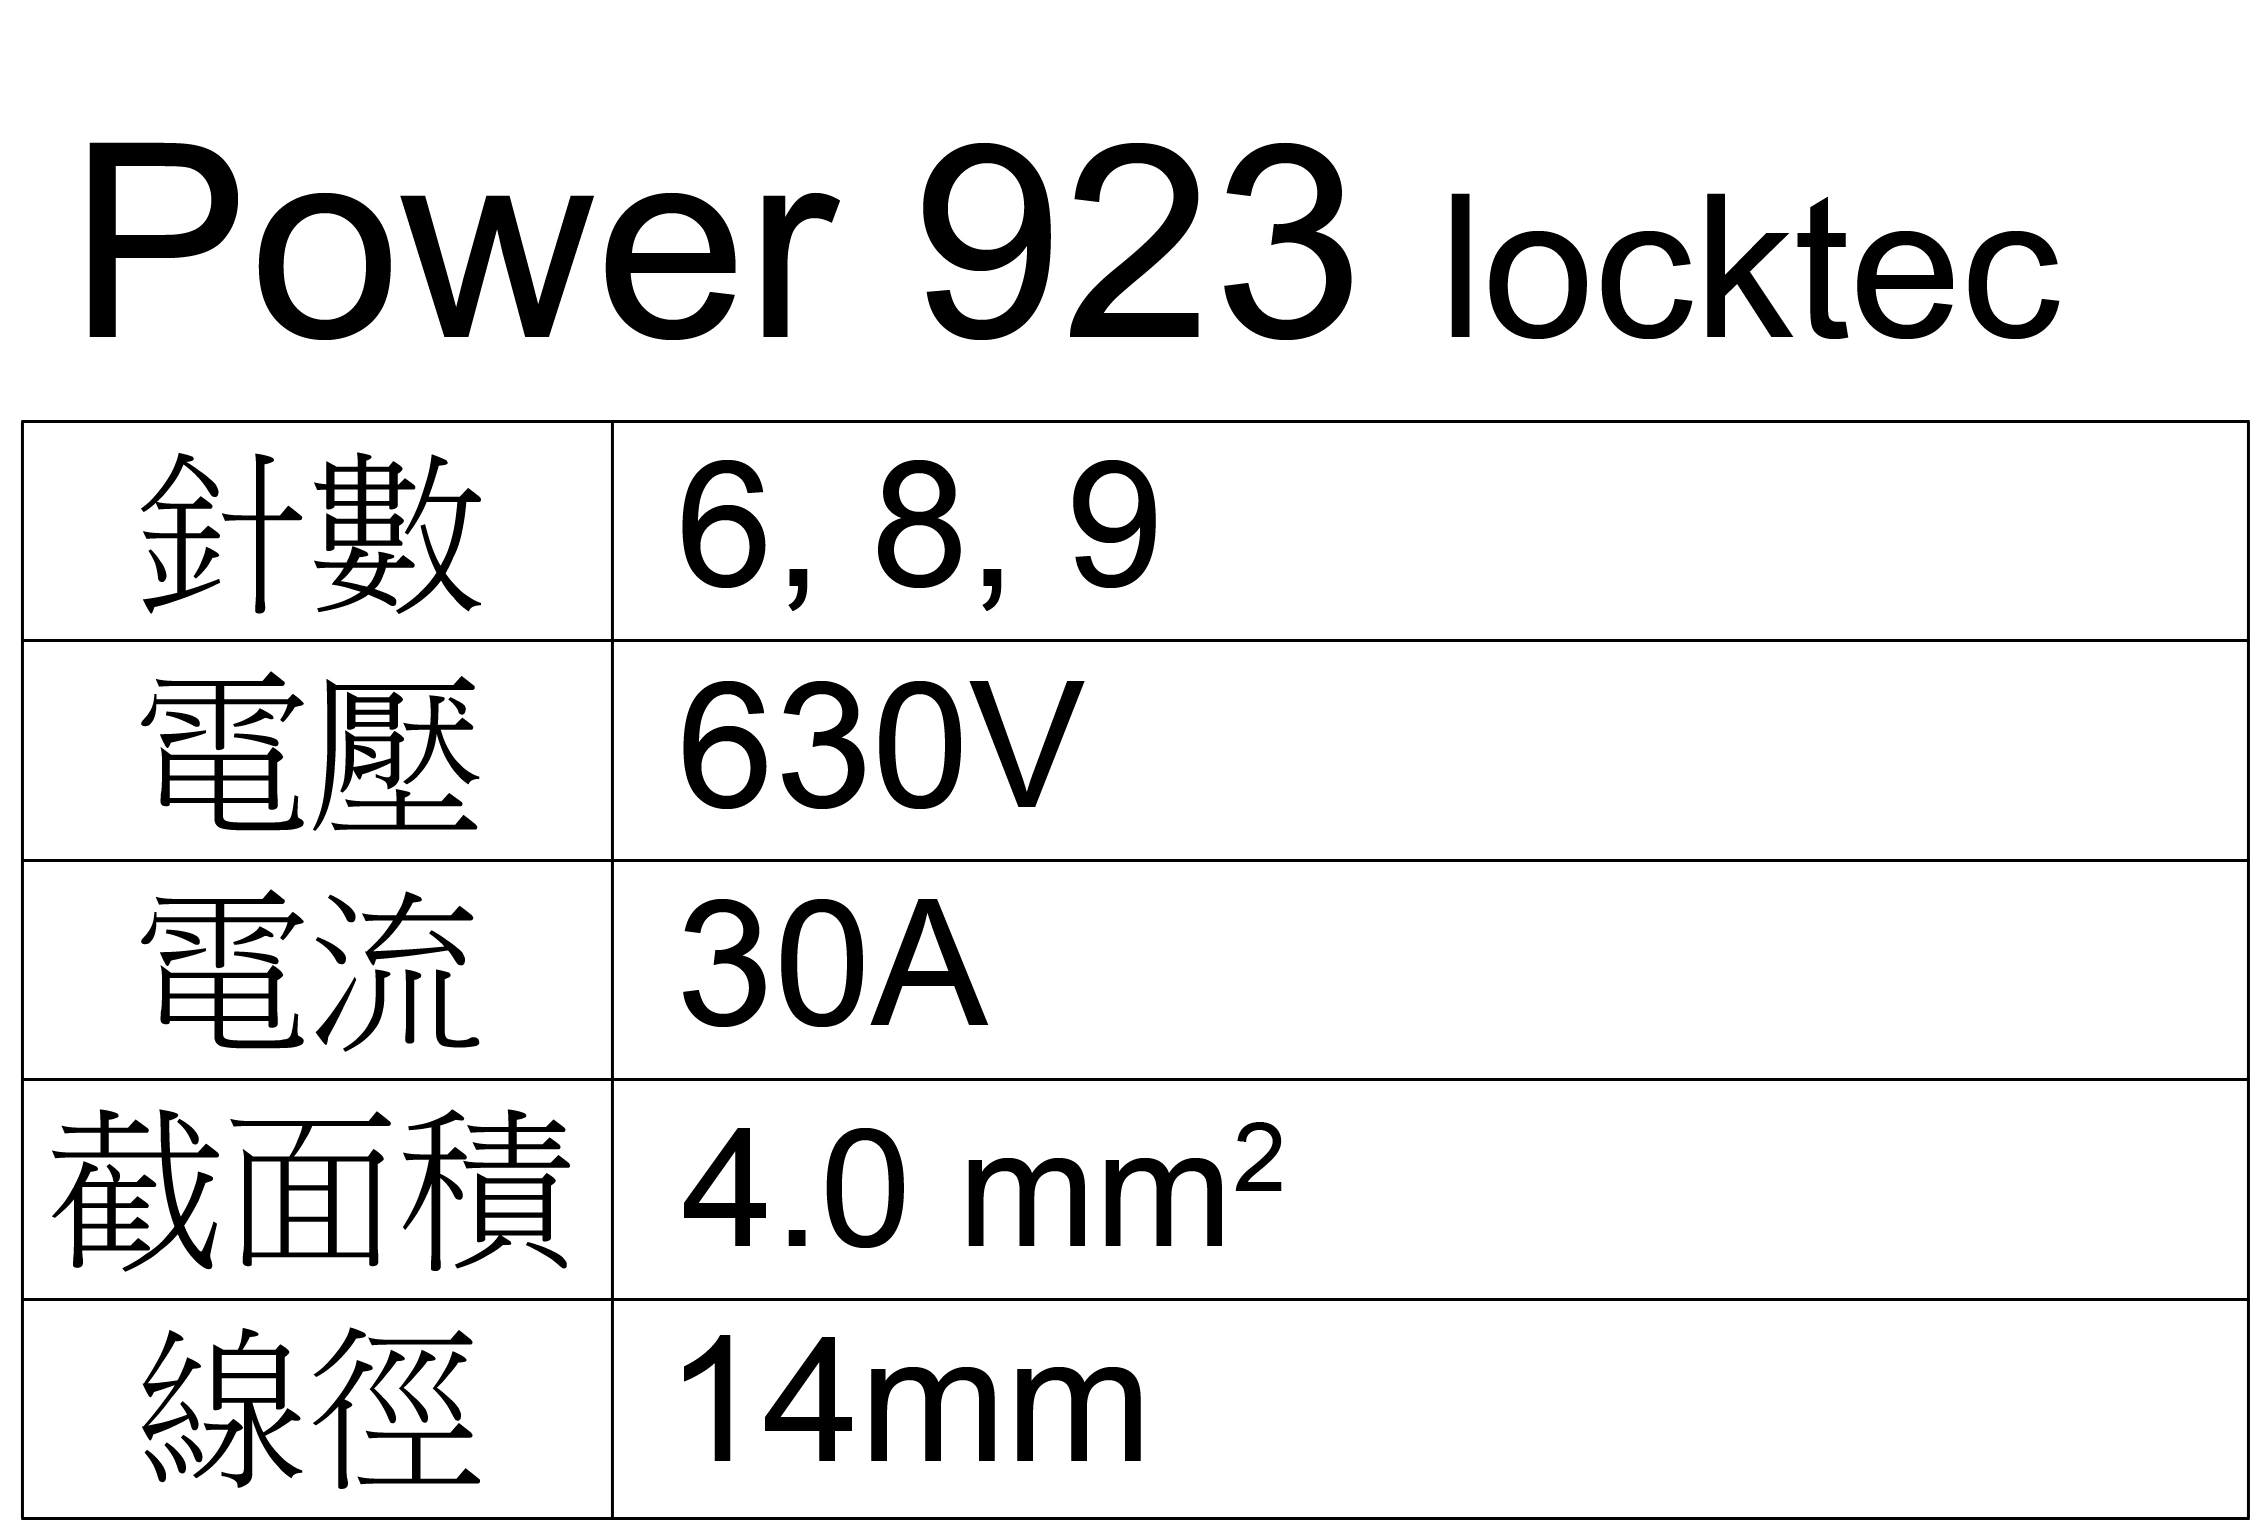 hcy-intercontec-power 923 locktec